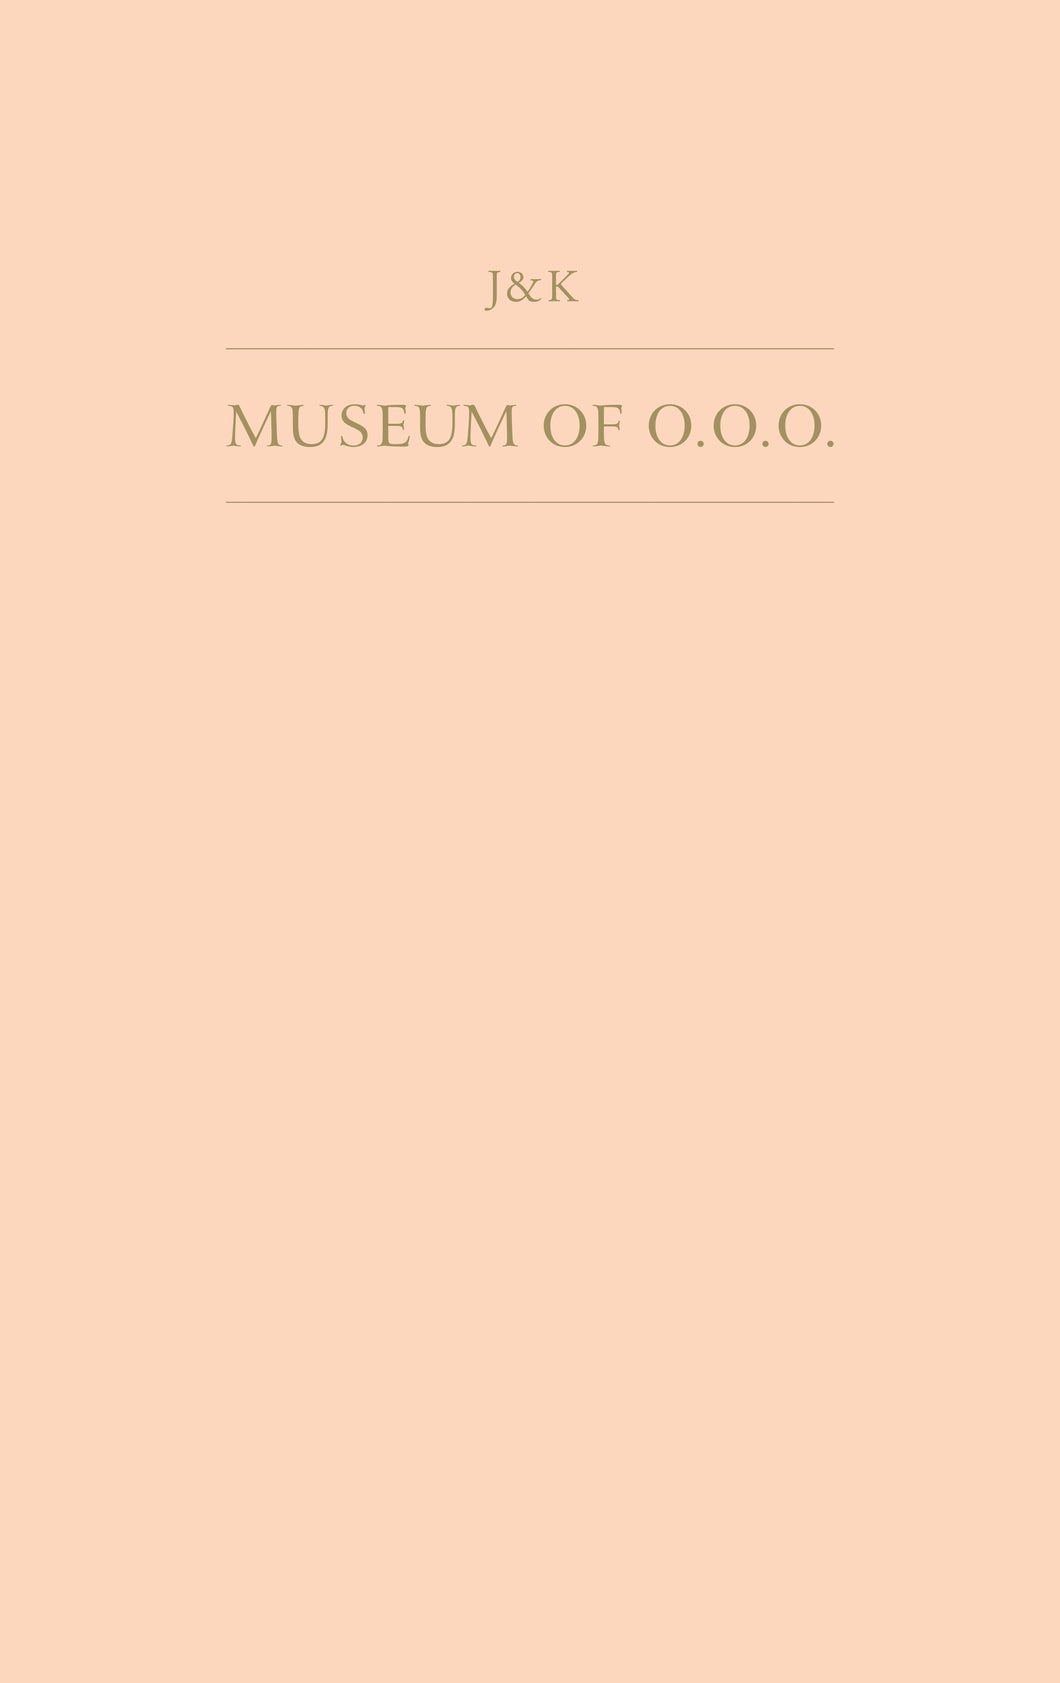 J&K [Janne Schäfer and Kristine Agergaard]: MUSEUM OF O.O.O.